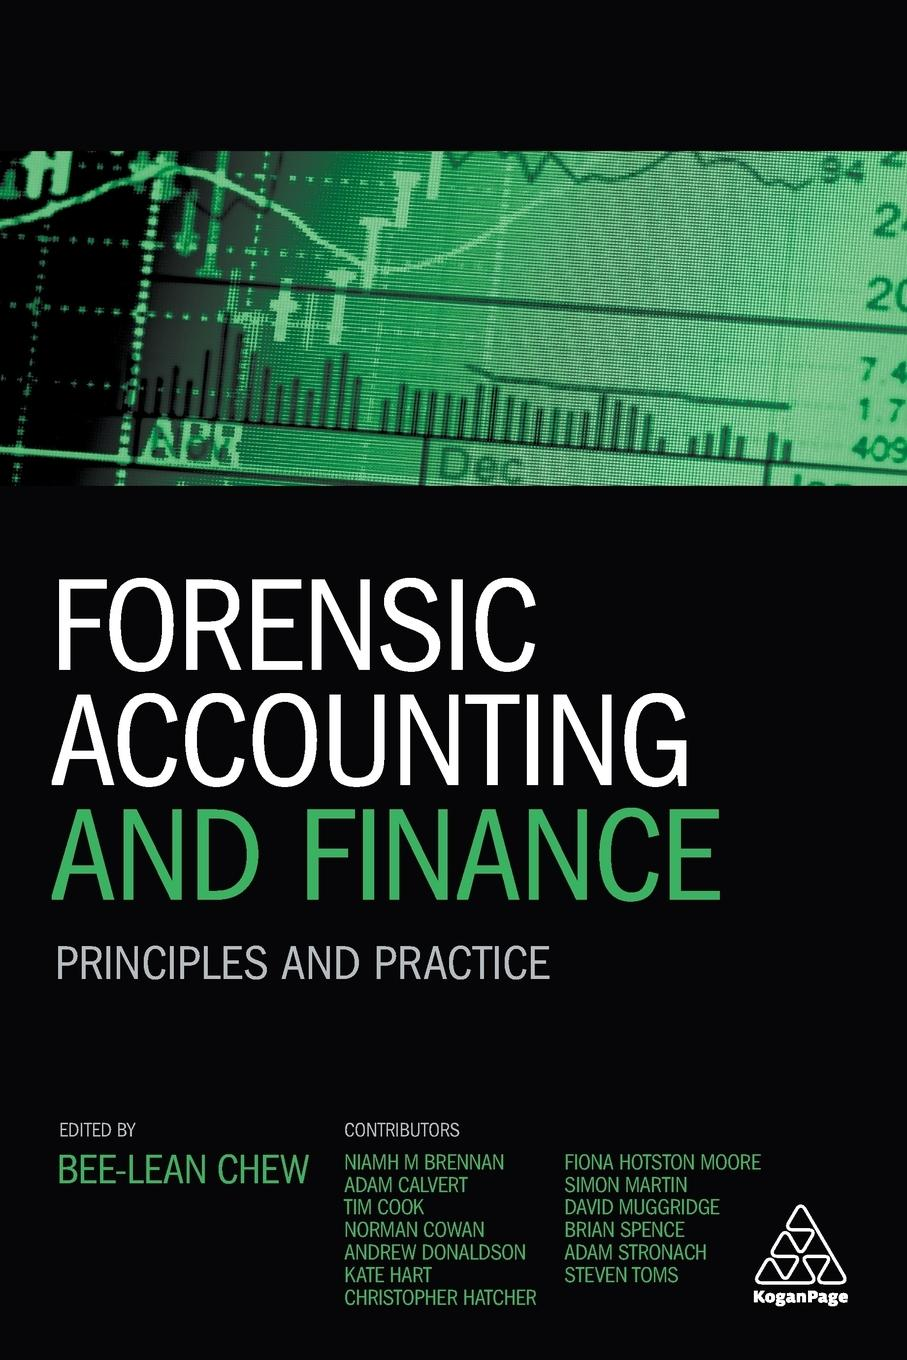 Forensic-Accounting-and-Finance